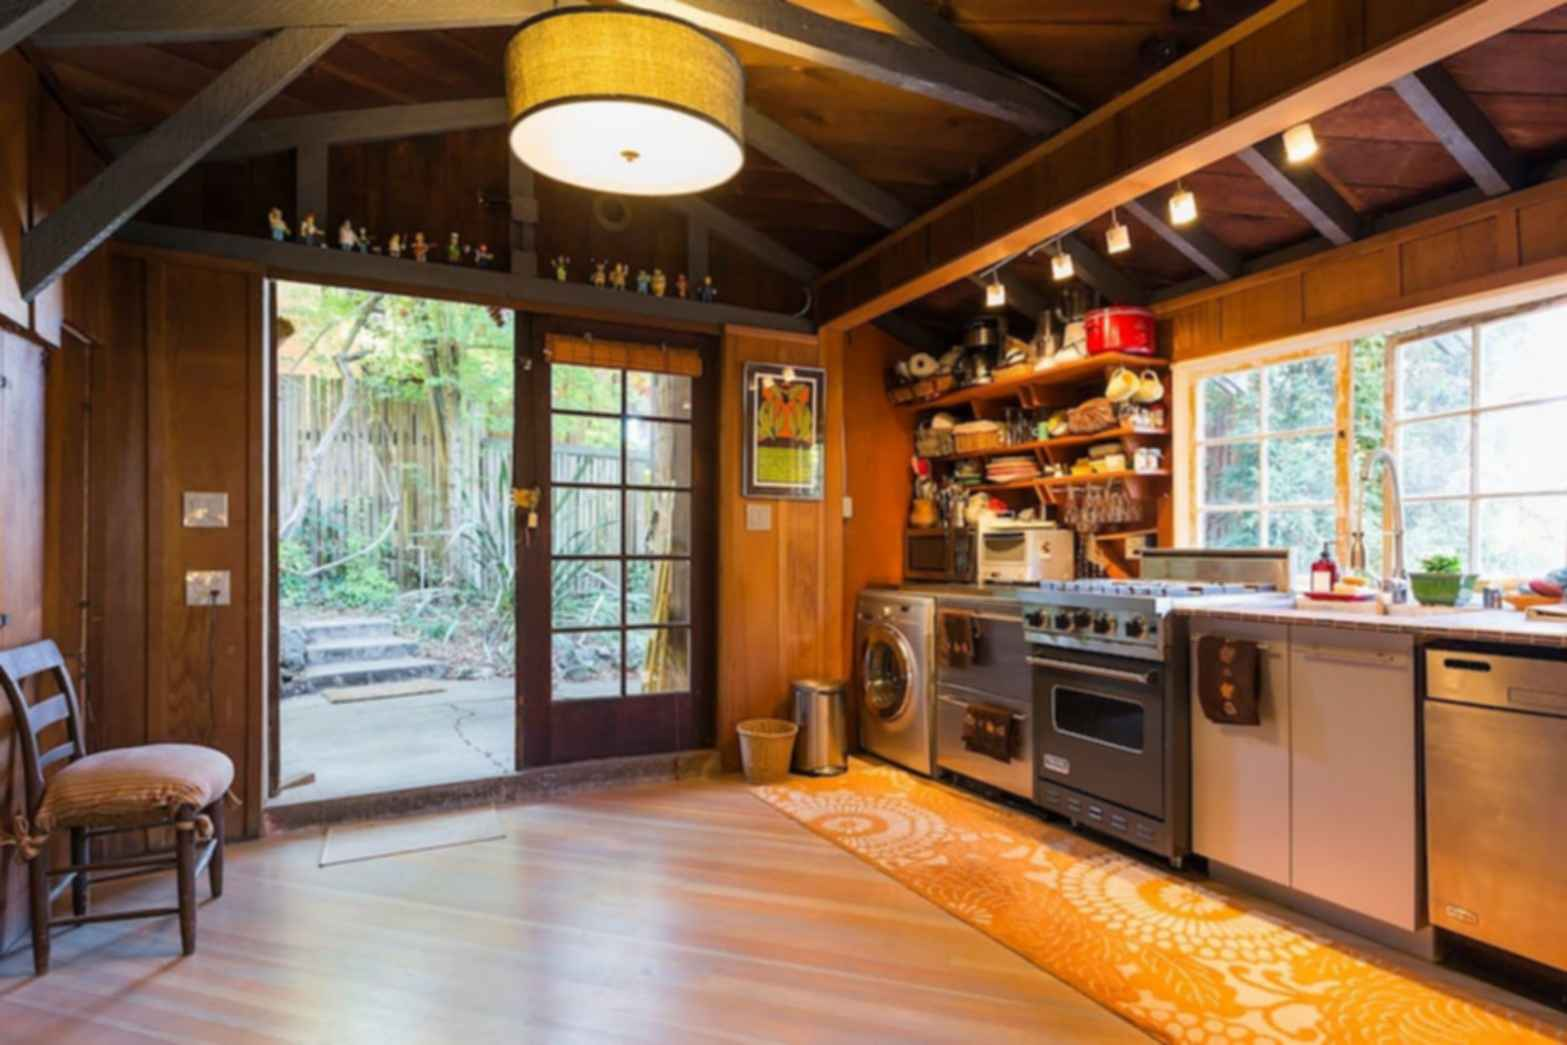 _Maybeck Carriage House - Interior/Kitchen